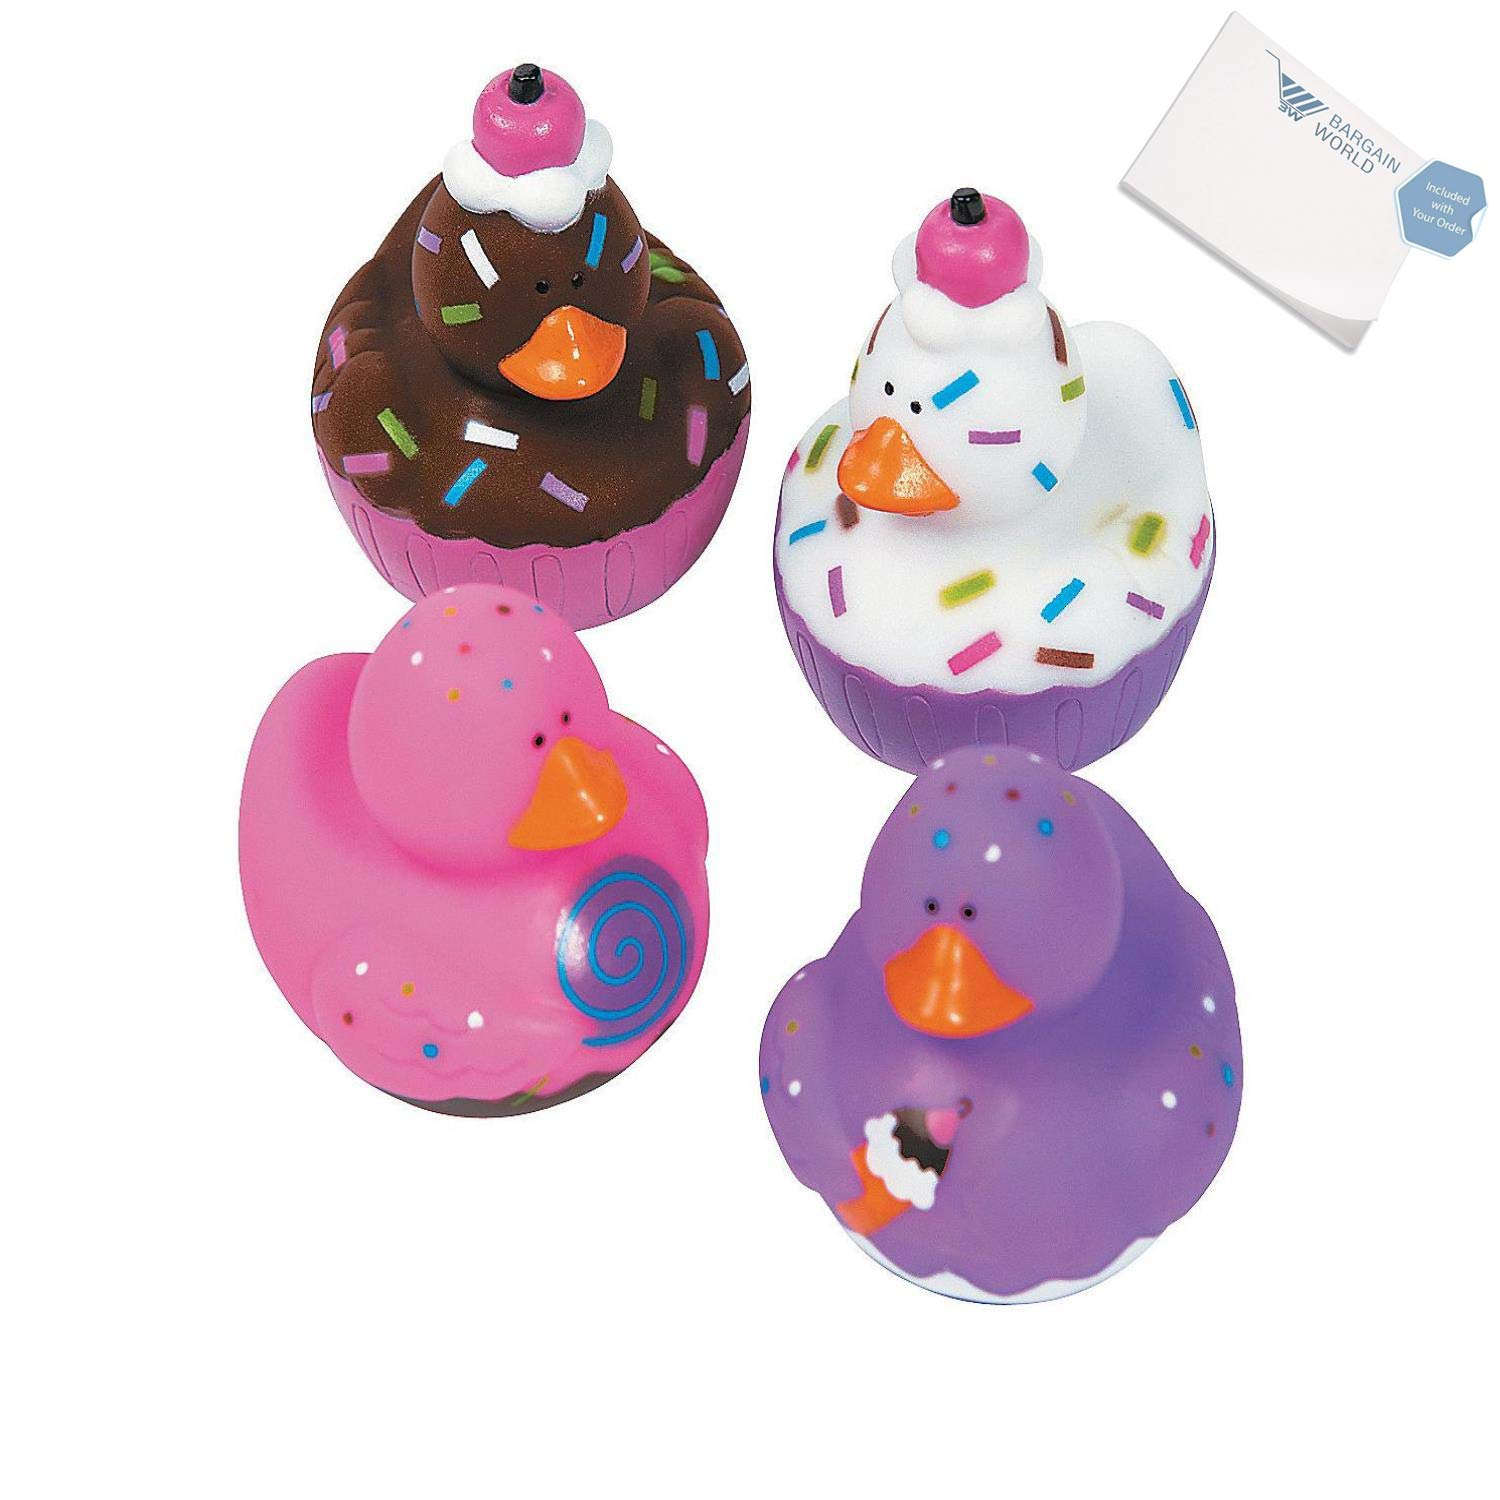 Bargain World Vinyl Sweet Treats Rubber Duckies (With Sticky Notes) by Bargain World (Image #1)